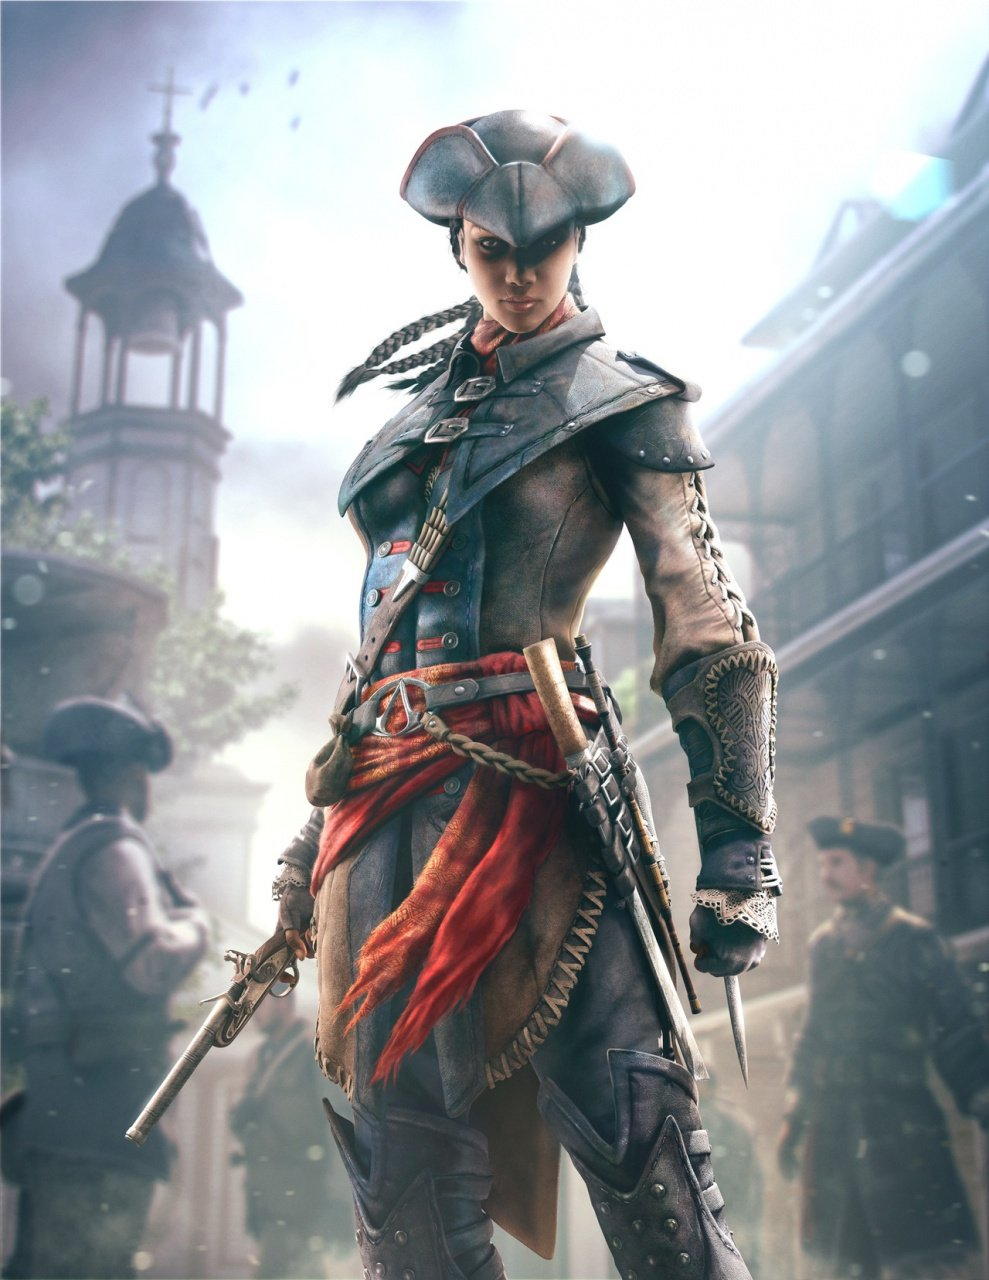 ubisoft female protagonists in main assassin 39 s creed titles wouldn 39 t be surprising nintendo. Black Bedroom Furniture Sets. Home Design Ideas